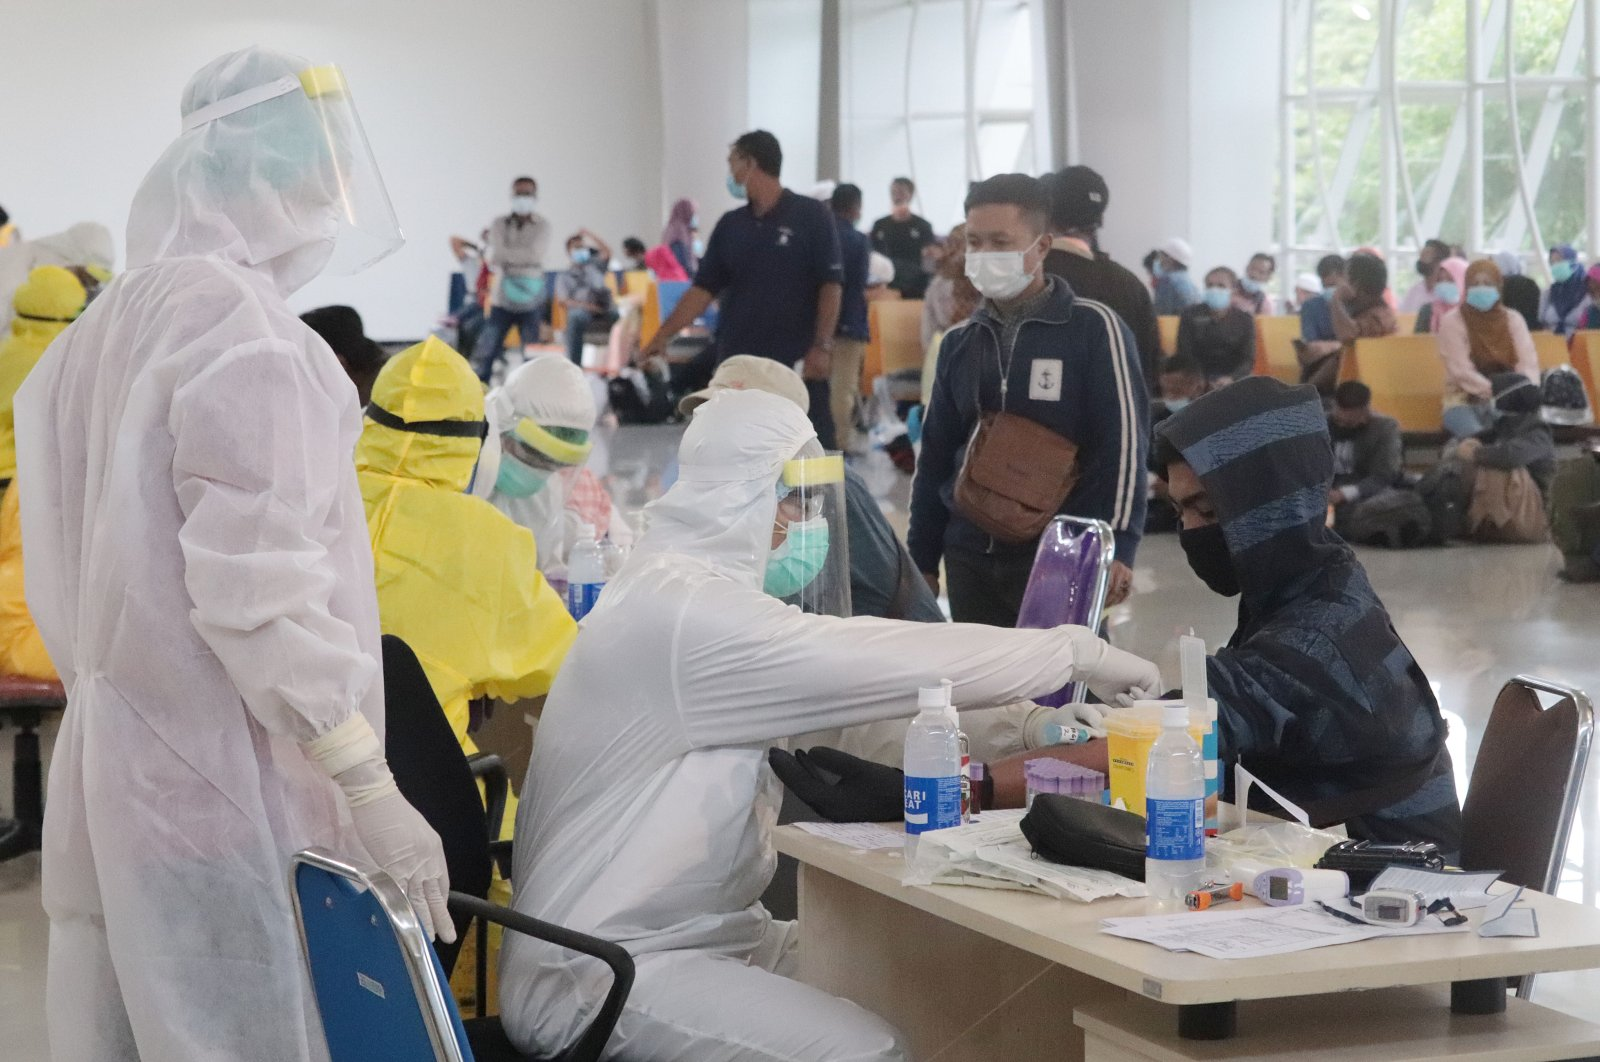 Health care professionals carry out health checks at Juanda International Airport in East Java's capital Surabaya, Indonesia, Tuesday, April 7, 2020. (AA Photo)